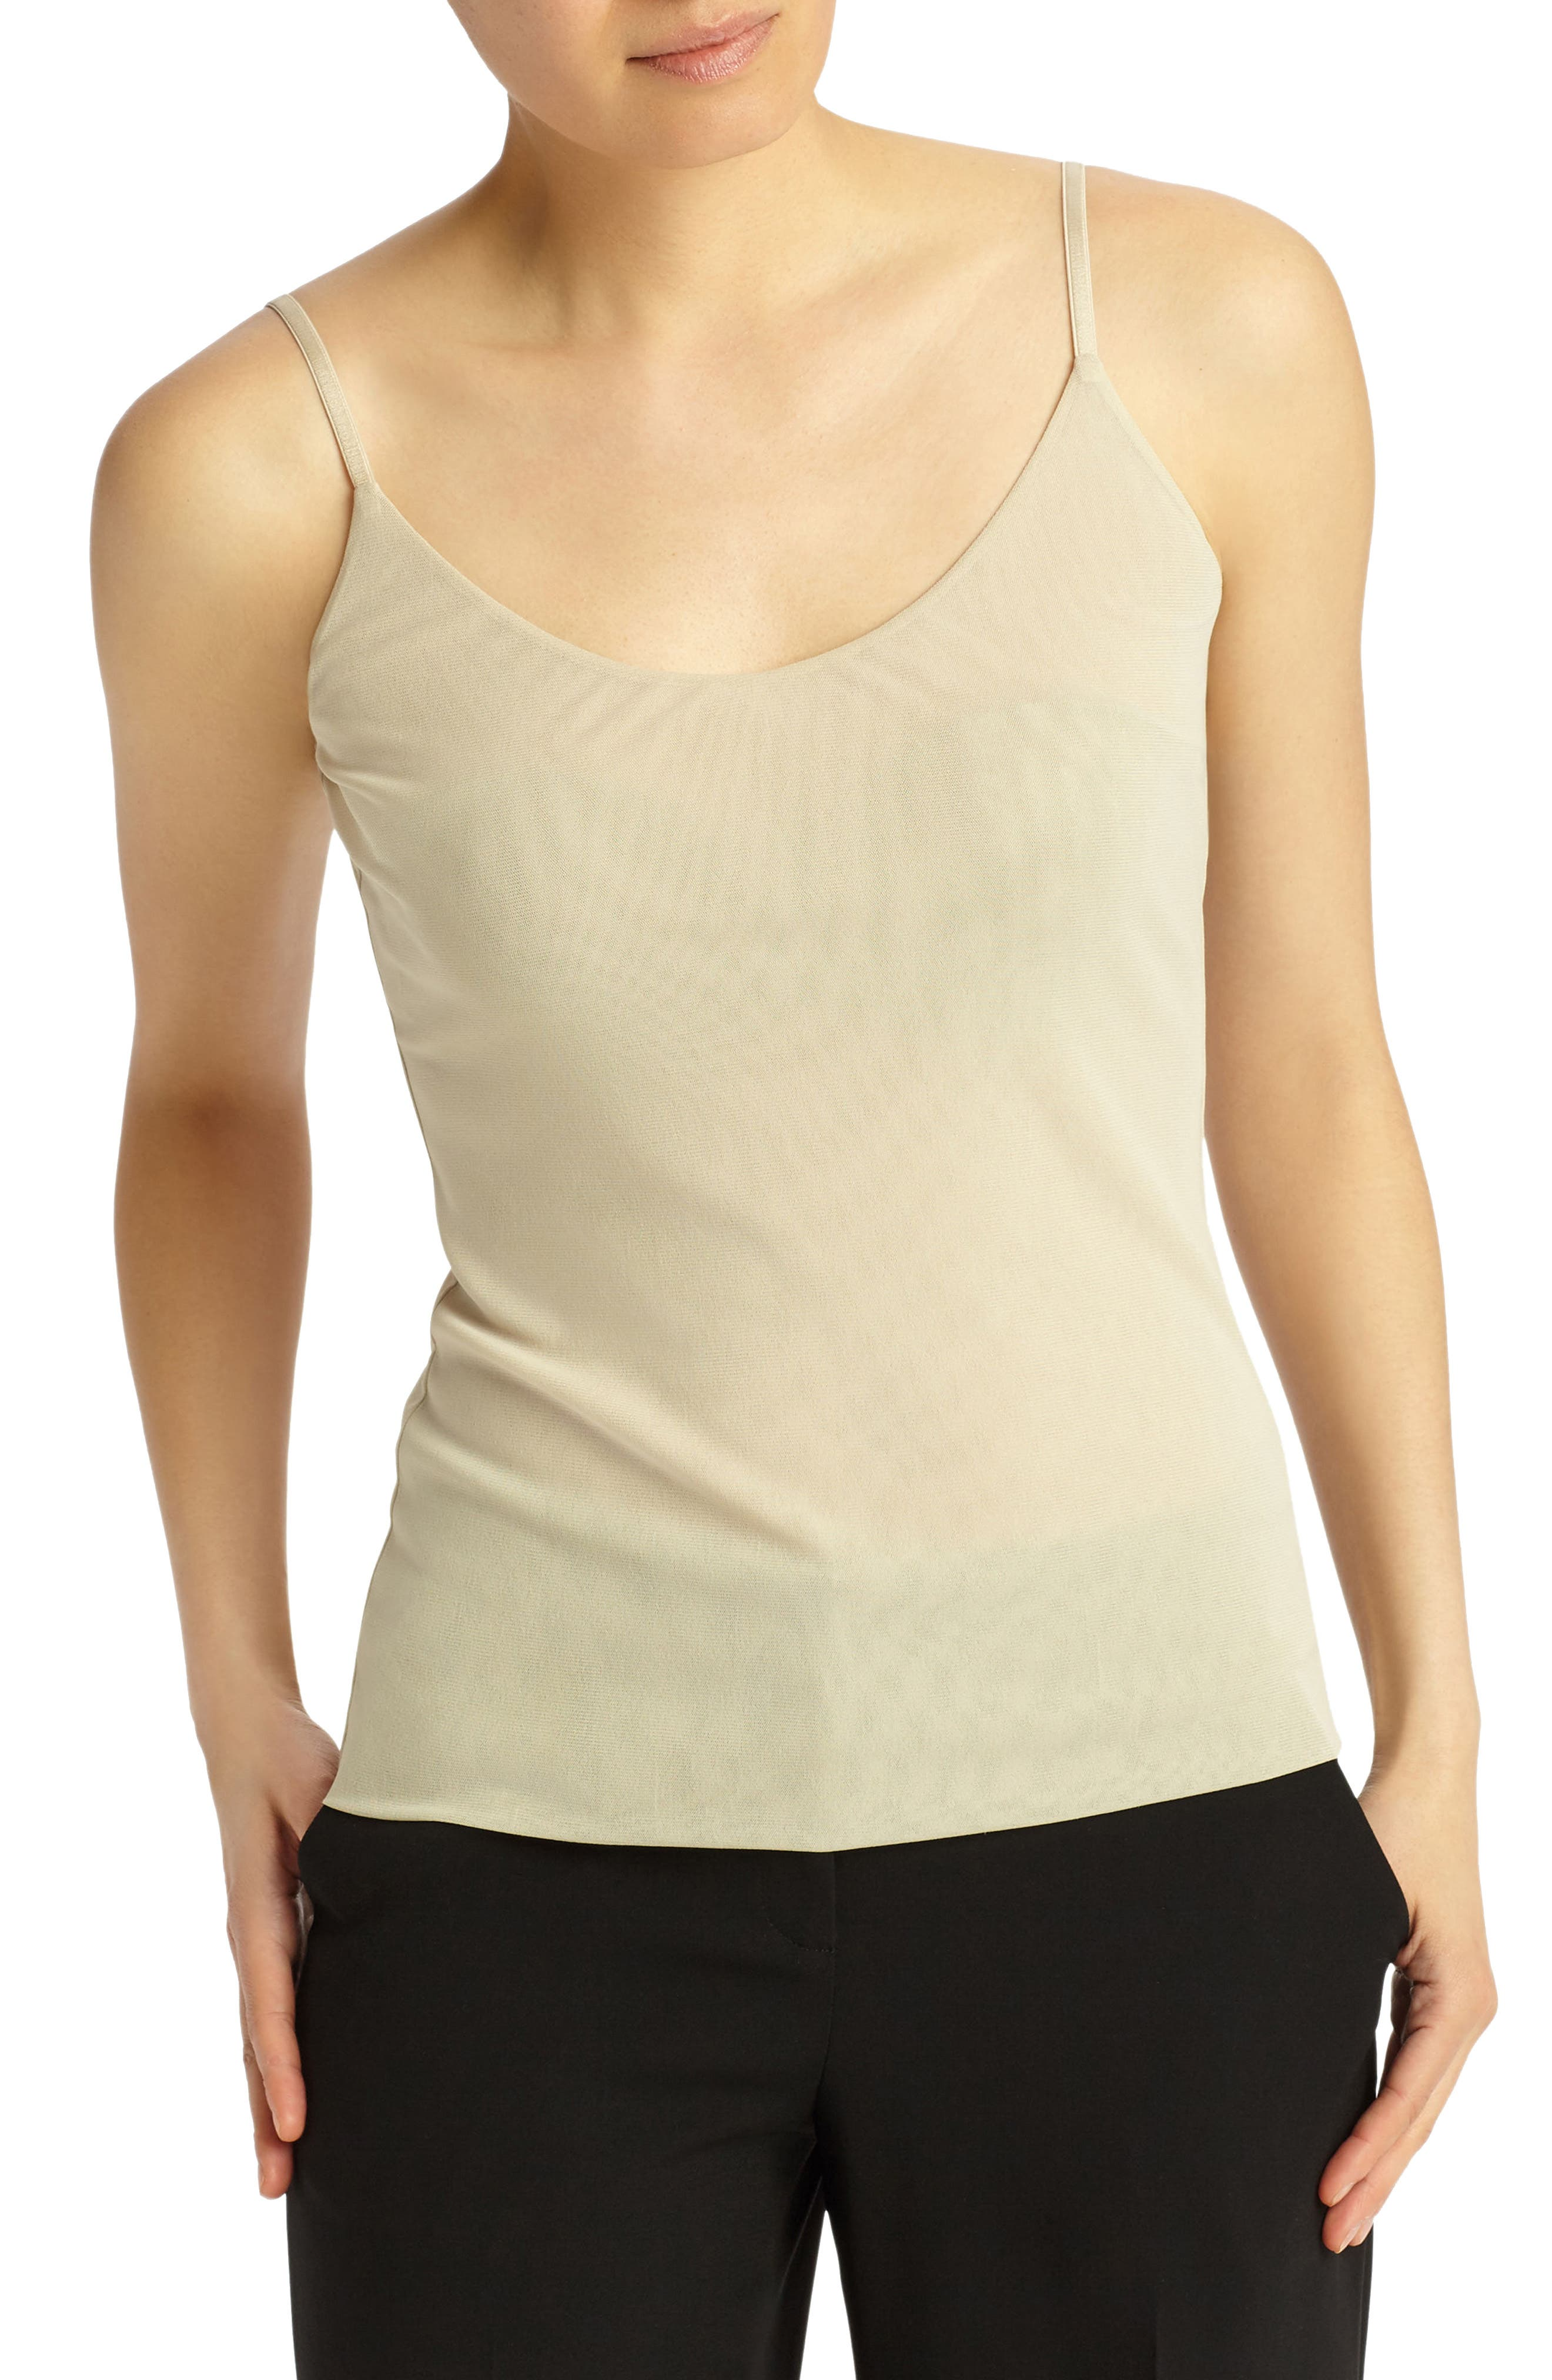 LAFAYETTE 148 NEW YORK Mesh Jersey Camisole, Main, color, KHAKI